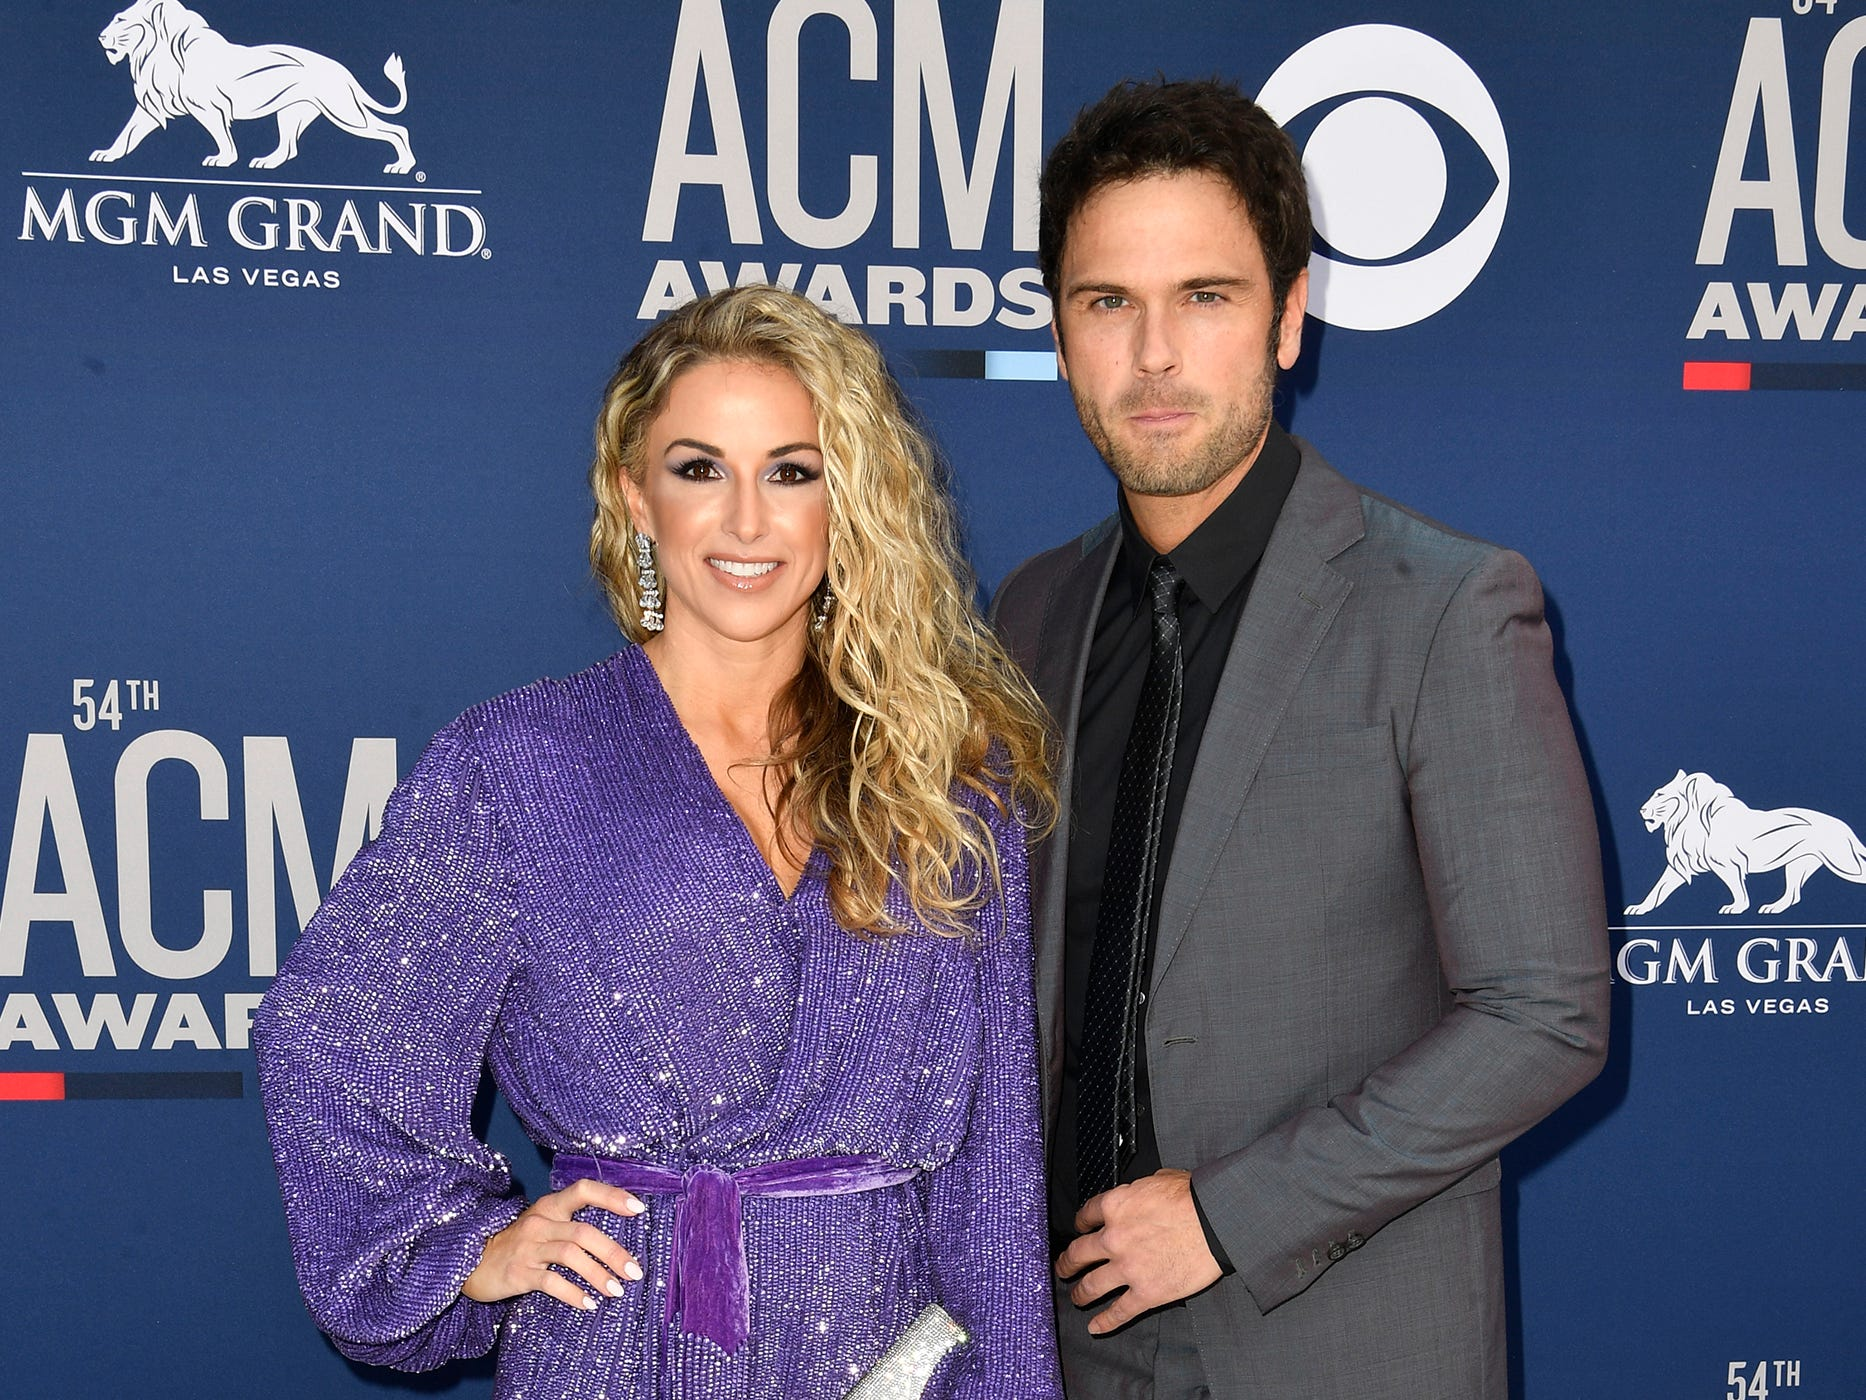 Chuck Wicks, right, and Kasi Williams, walk the red carpet at the 54TH Academy of Country Music Awards Sunday, April 7, 2019, in Las Vegas, Nev.